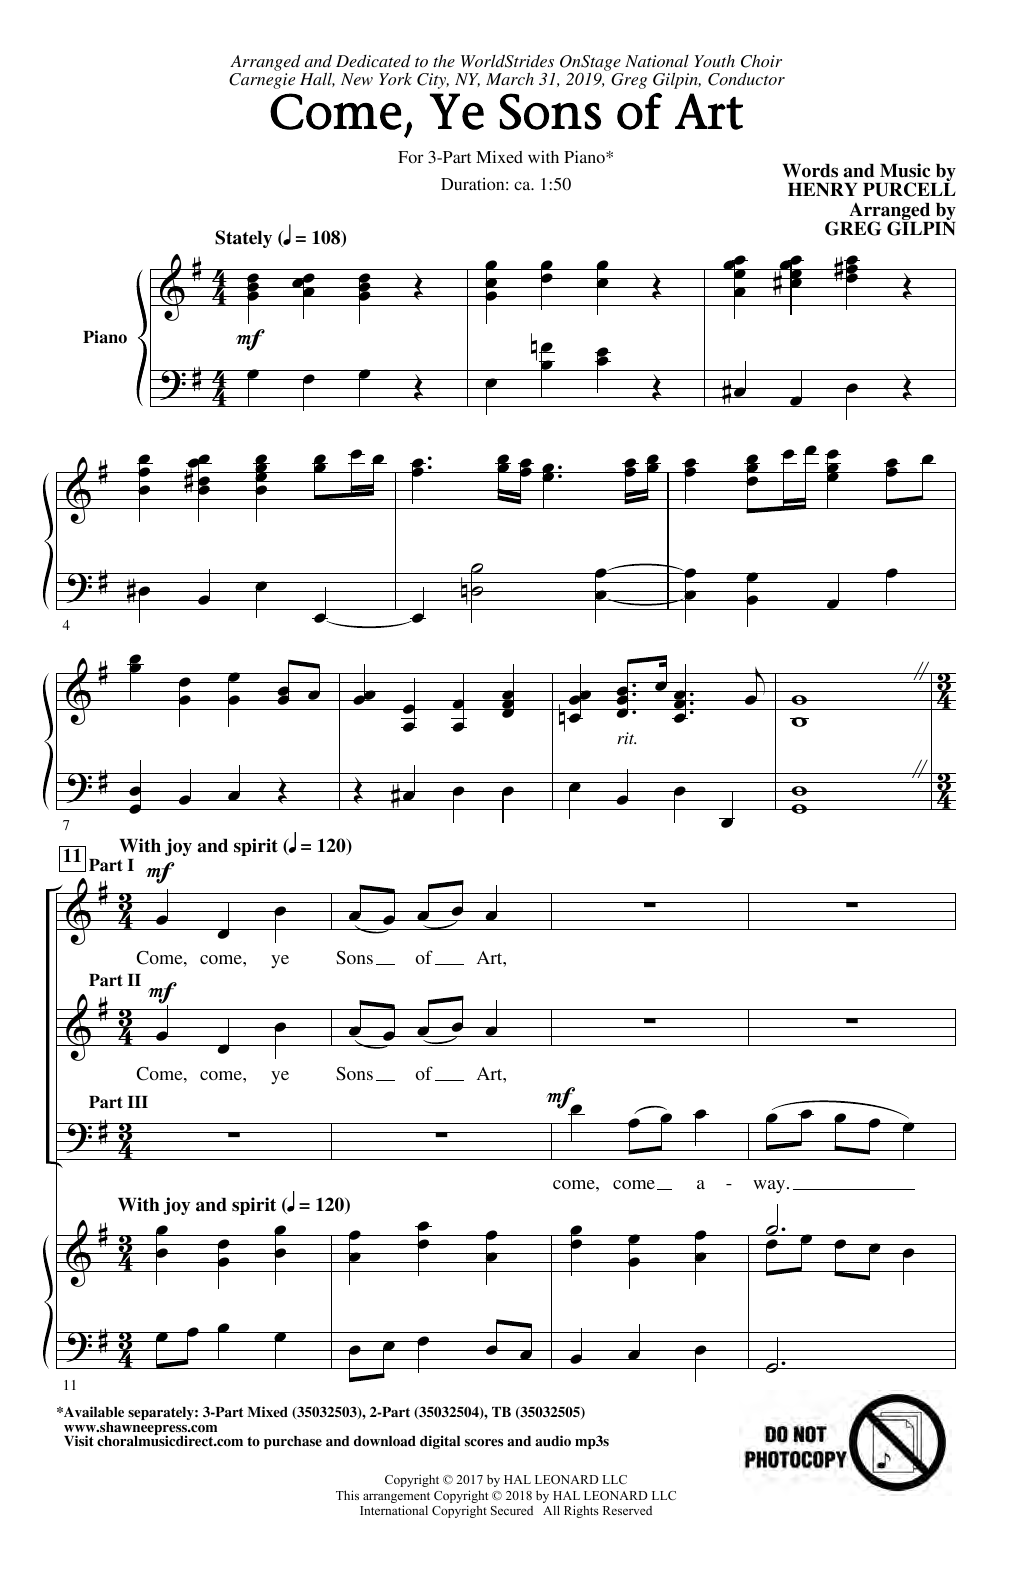 Download Henry Purcell 'Come, Ye Sons Of Art (arr. Greg Gilpin)' Digital Sheet Music Notes & Chords and start playing in minutes